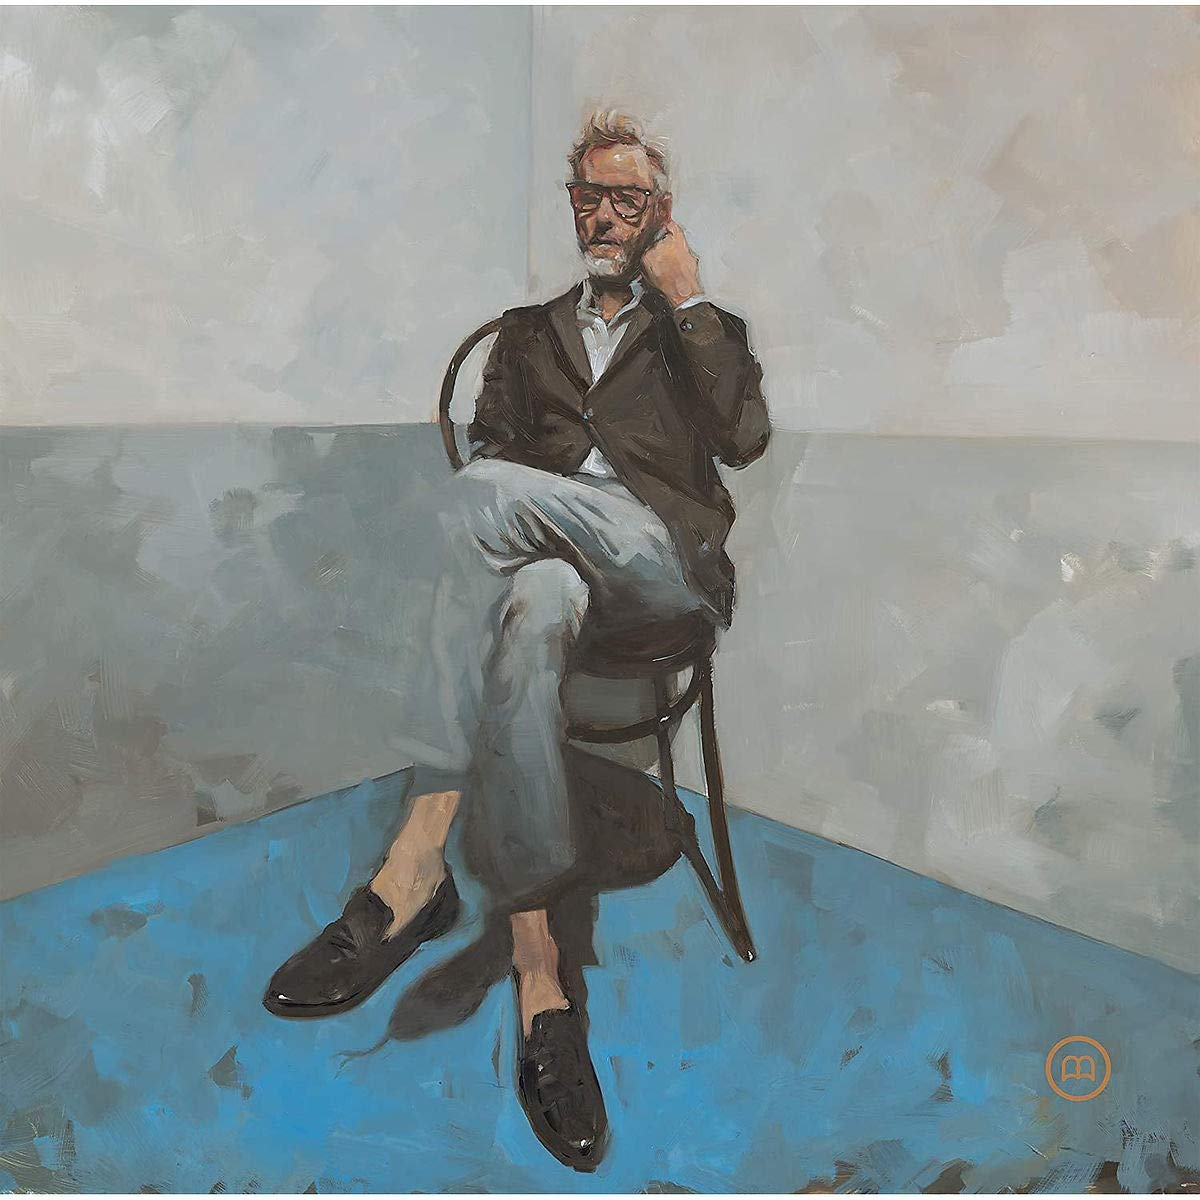 Matt Berninger: Serpentine Prison [Album Review]